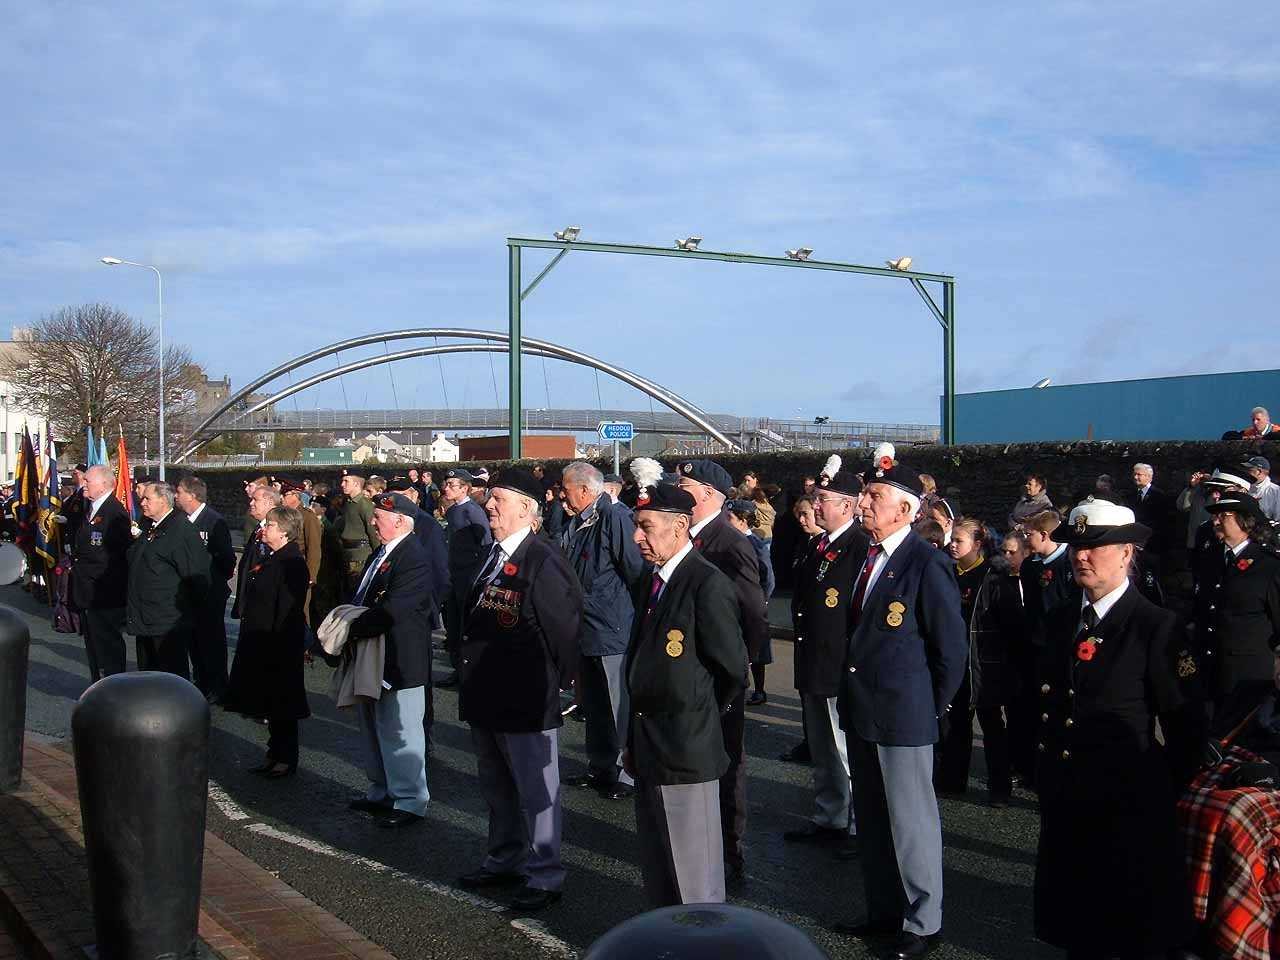 Anglesey, Holyhead, Remembrance Sunday 2006 - Veterans on Parade observe 3 minutes silence